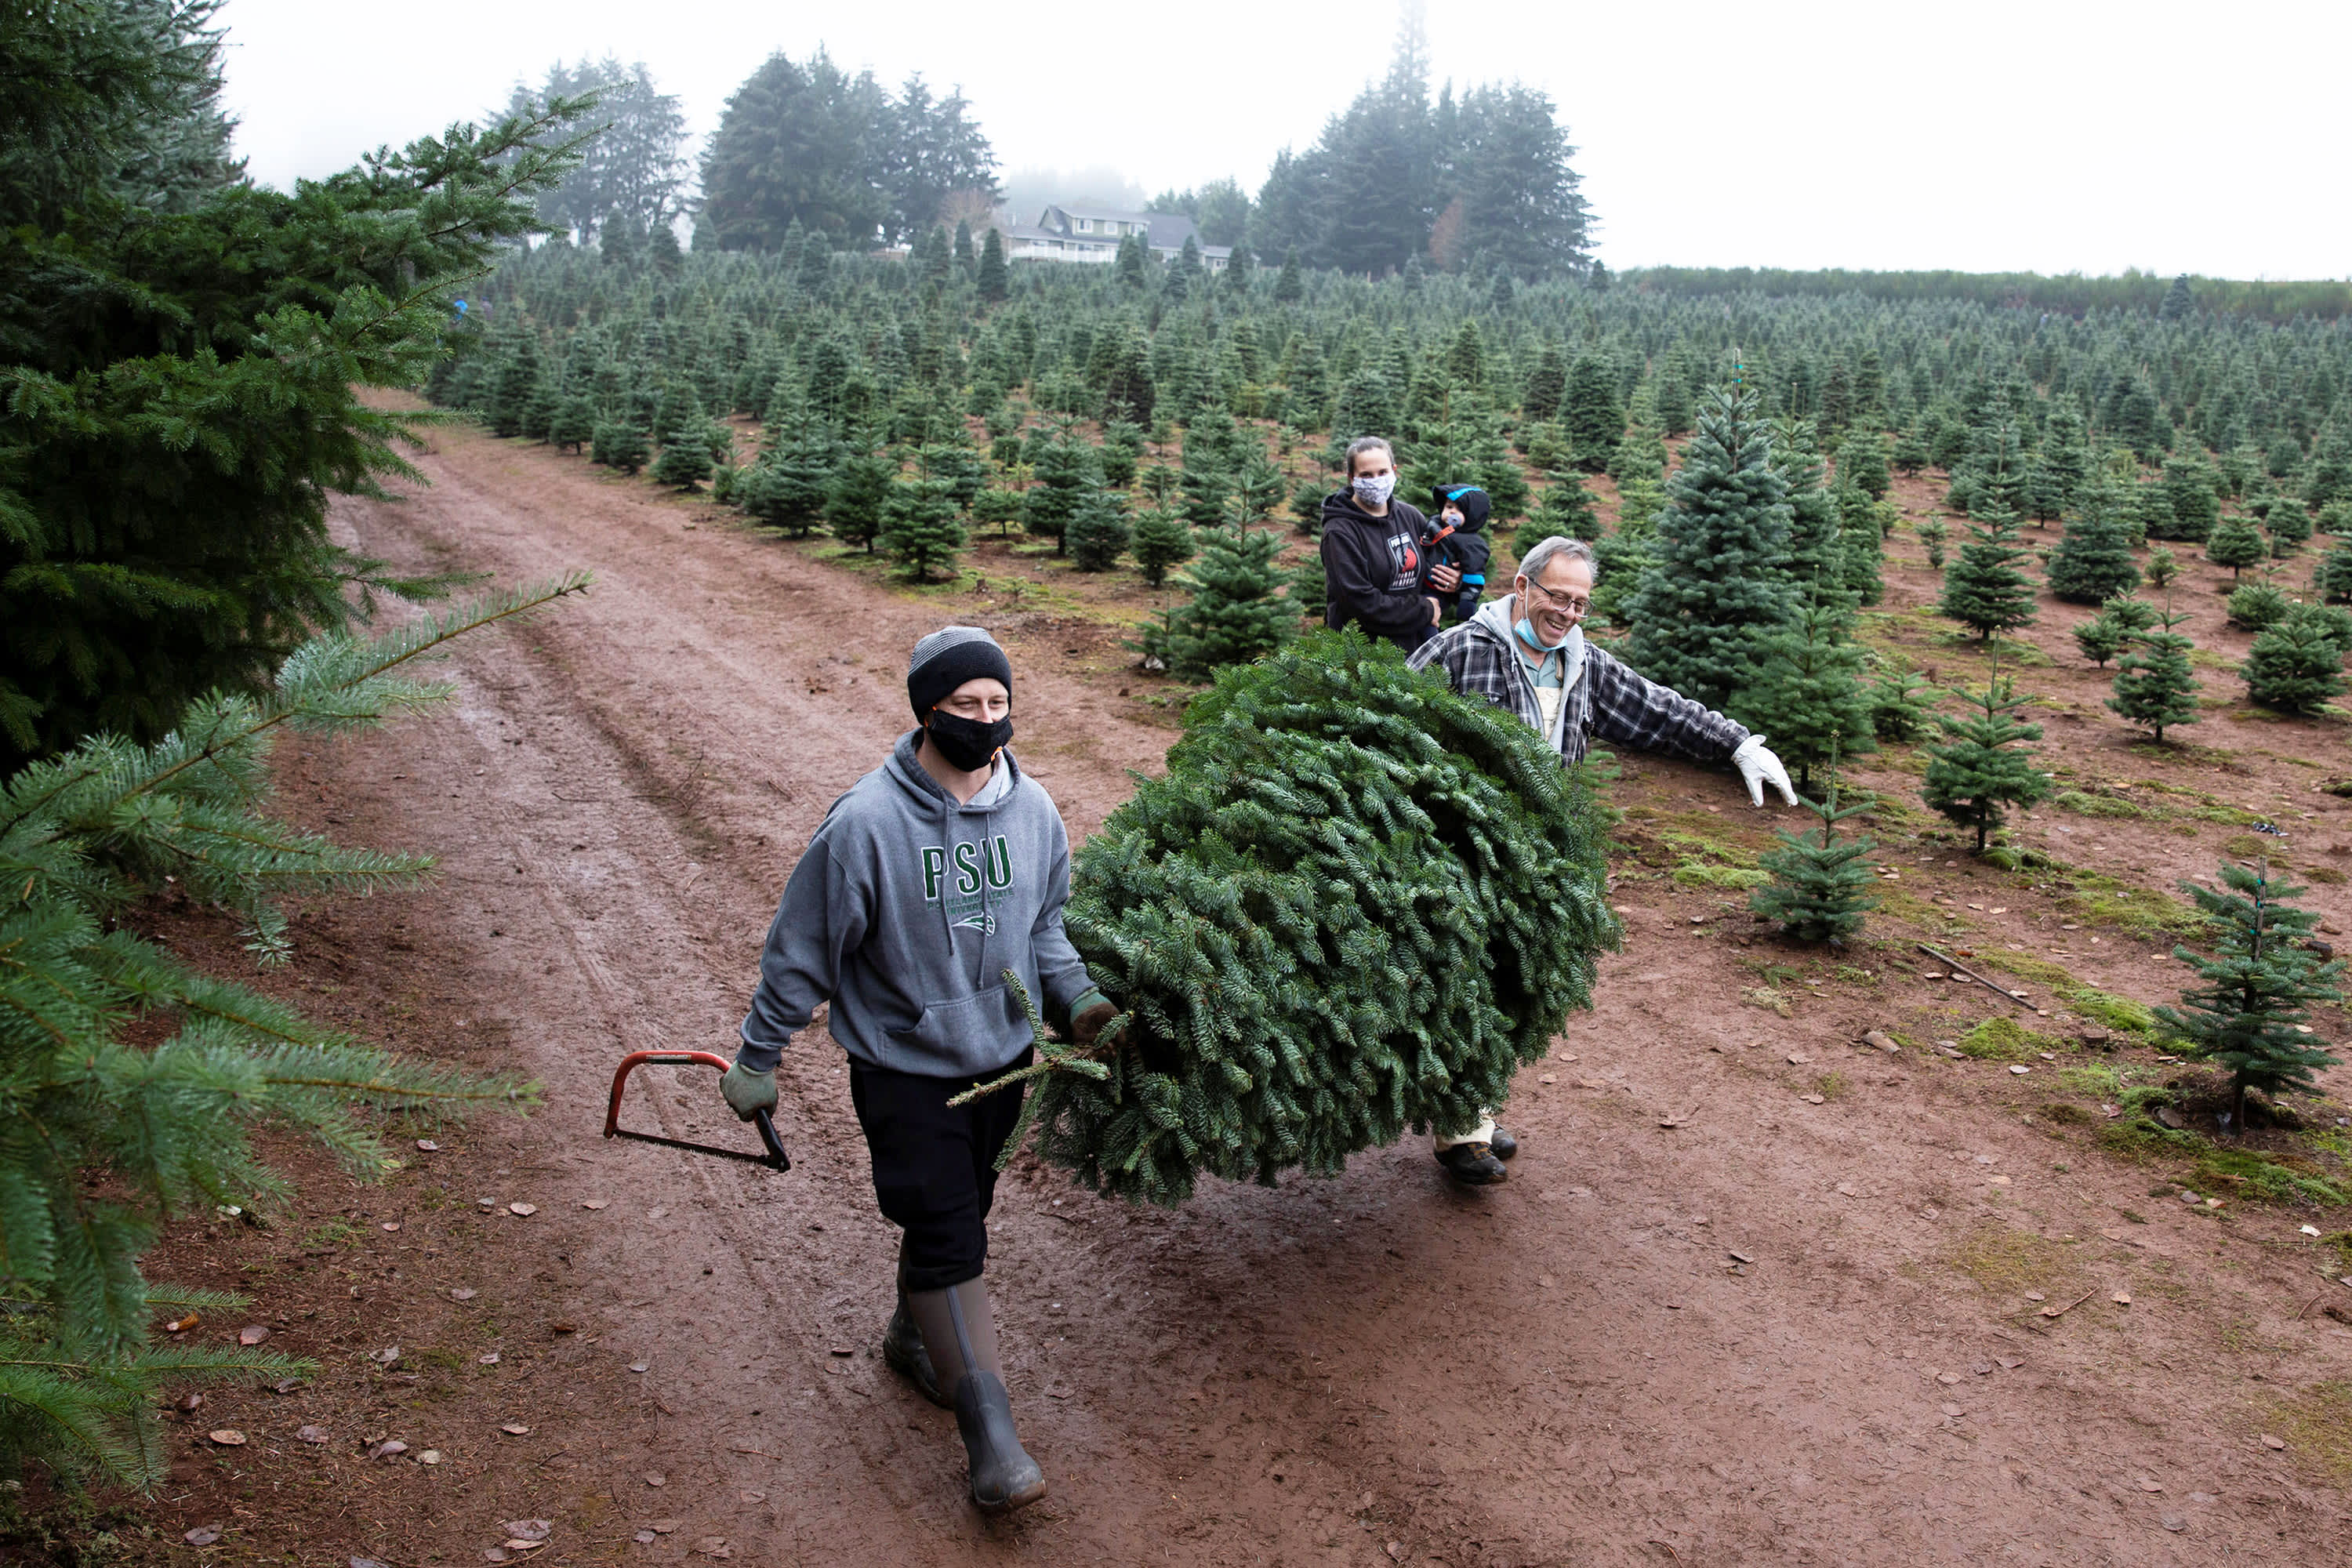 Christmas Tree Sales Are Telling A Holly Jolly Economic Story